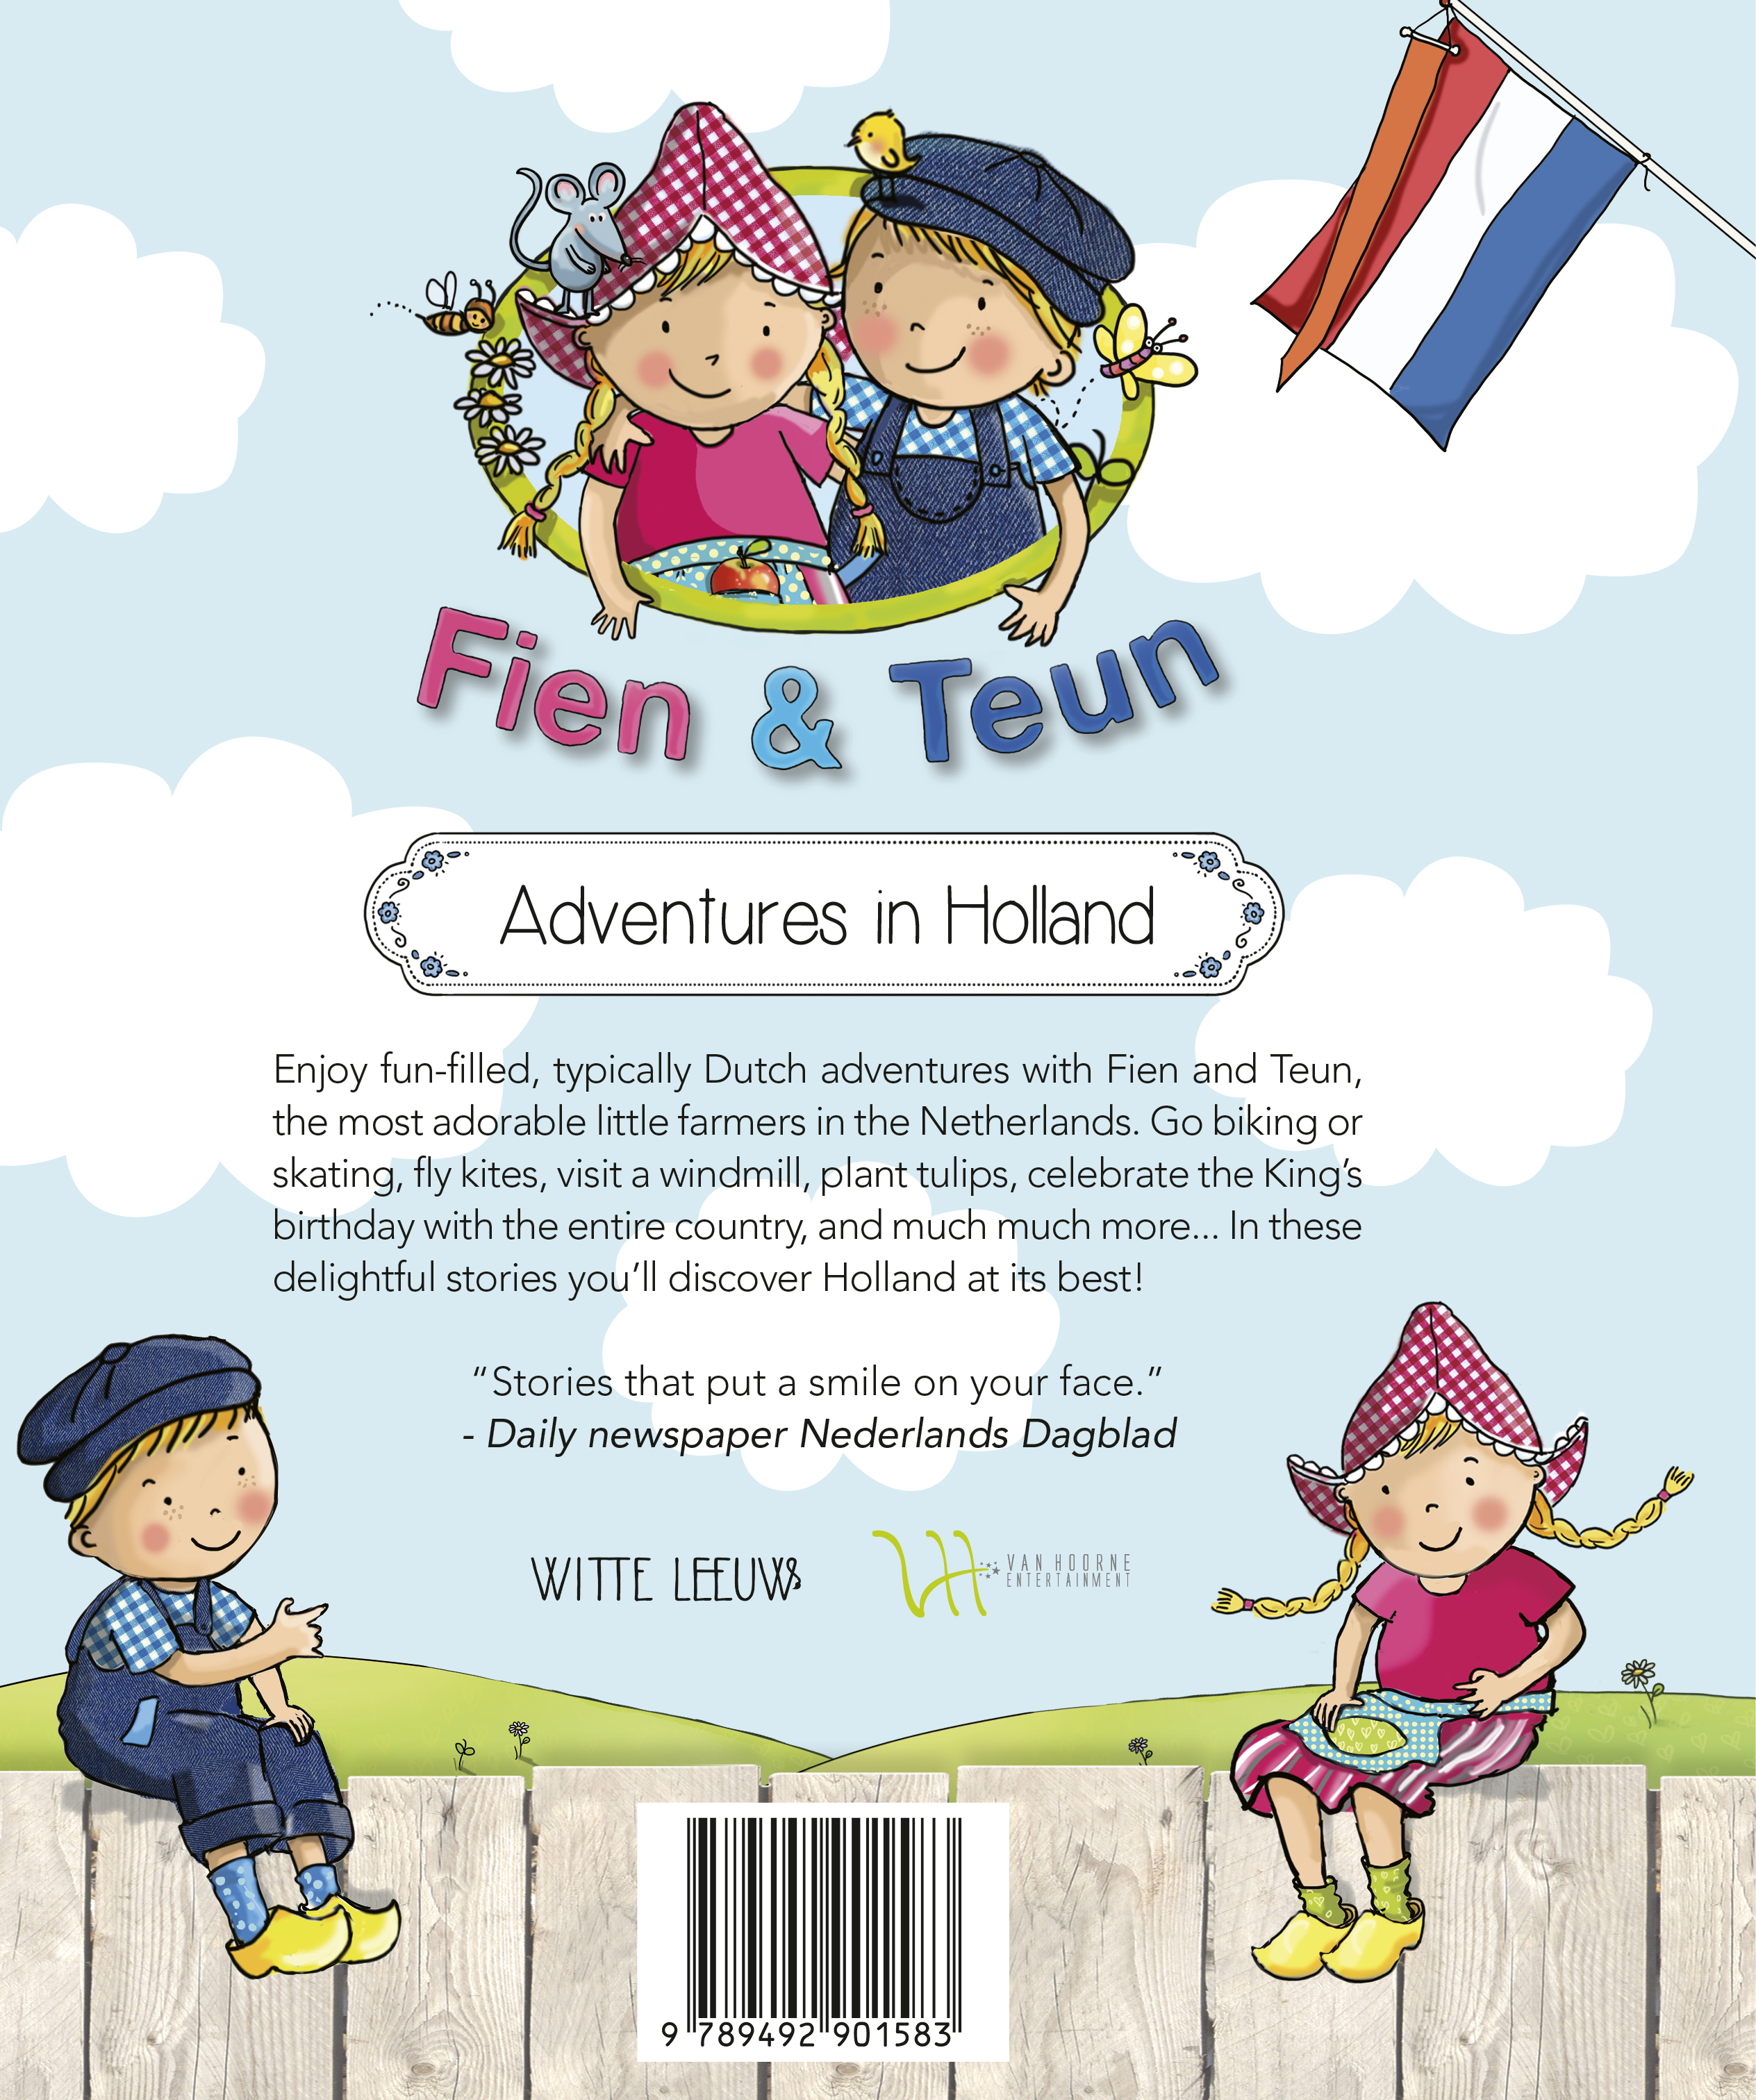 Fien & Teun – Adventures in Holland